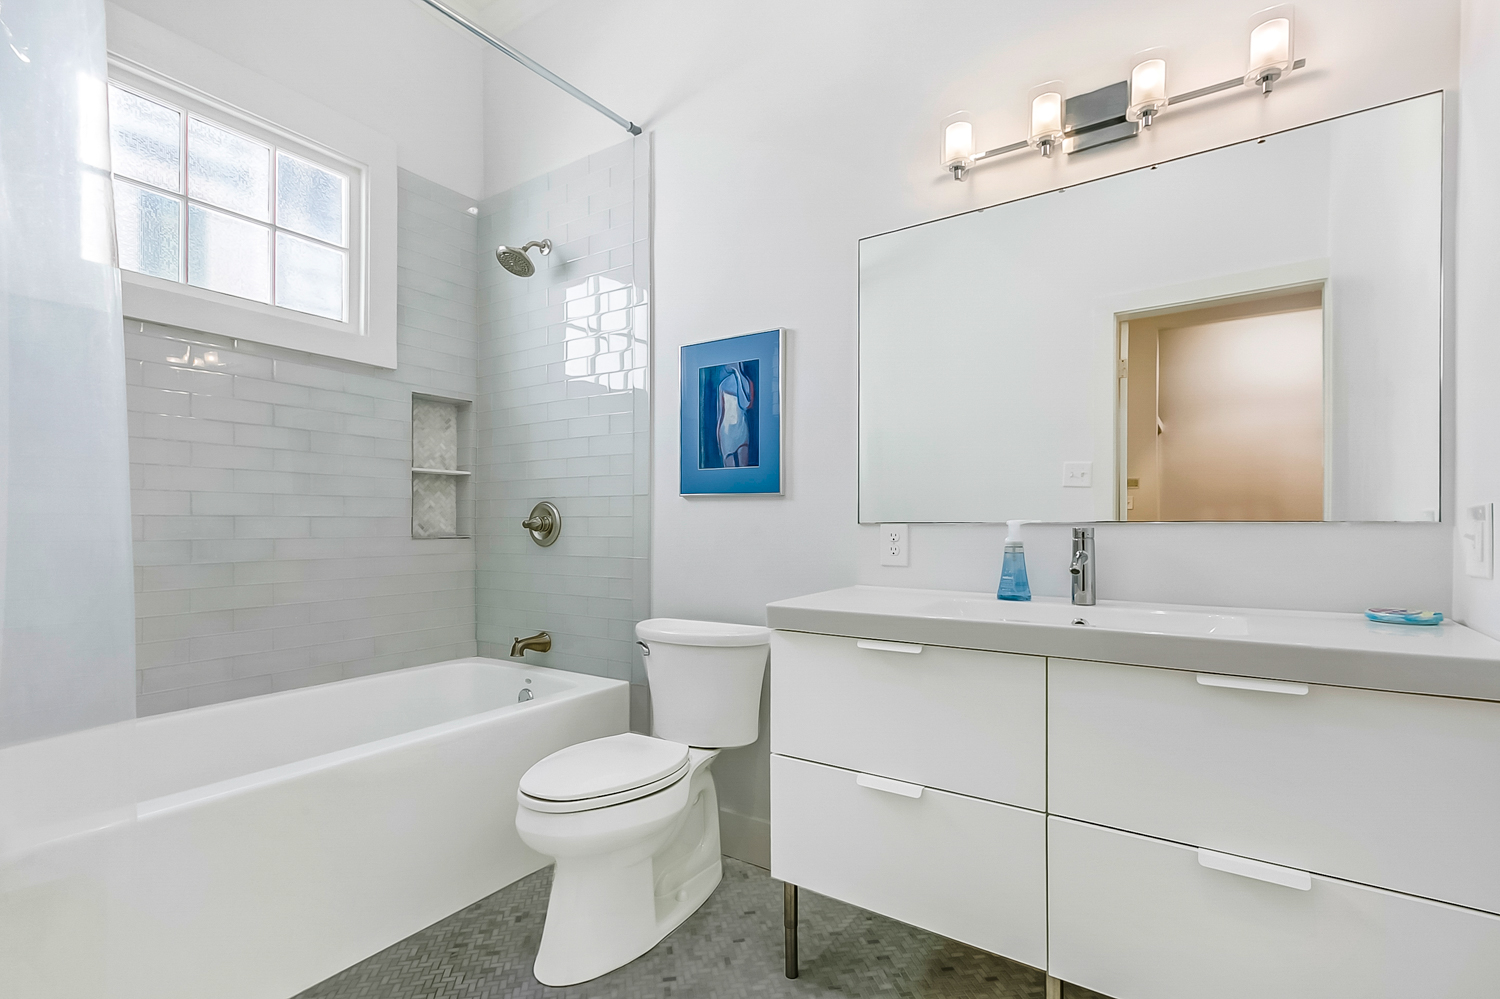 Garden District, House, 2 beds, 2.0 baths, $5500 per month New Orleans Rental - devie image_15